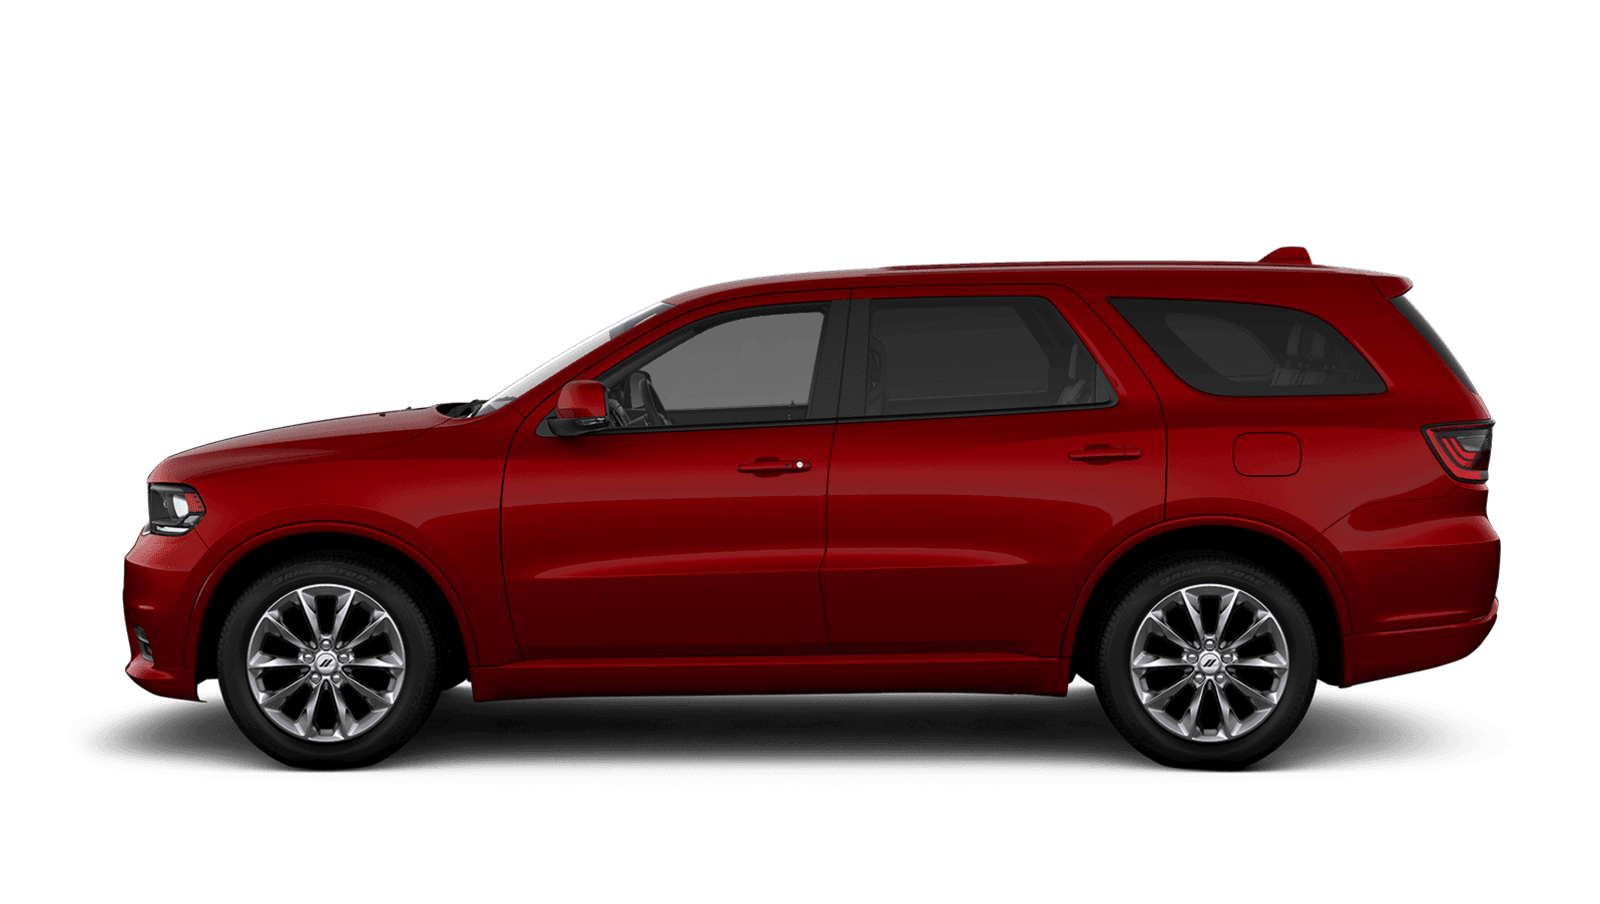 2021 Dodge Durango sideview with 20-inch Satin Carbon aluminum wheels